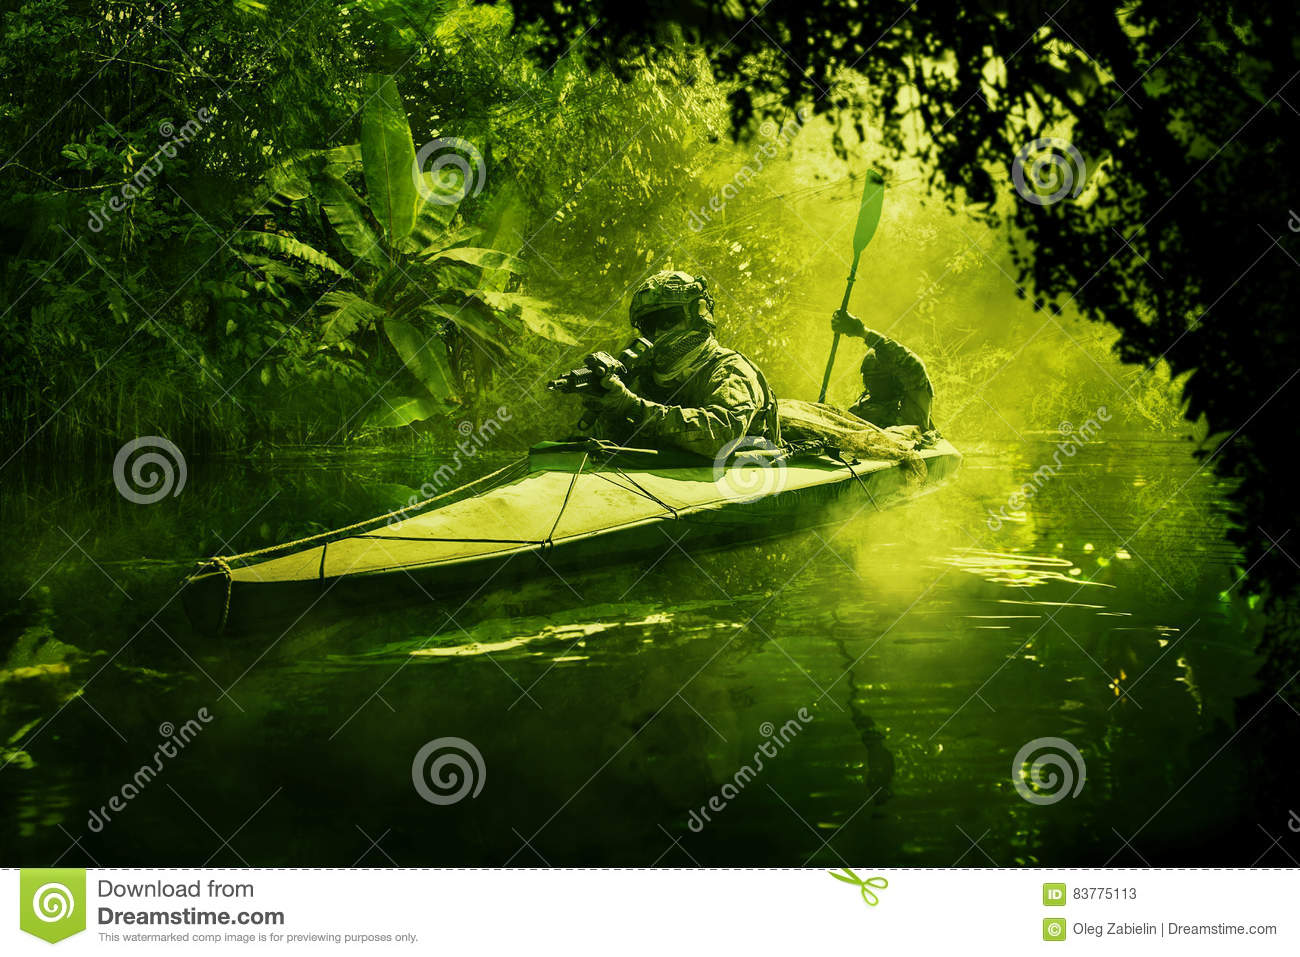 Special forces in the military kayak in the jungle